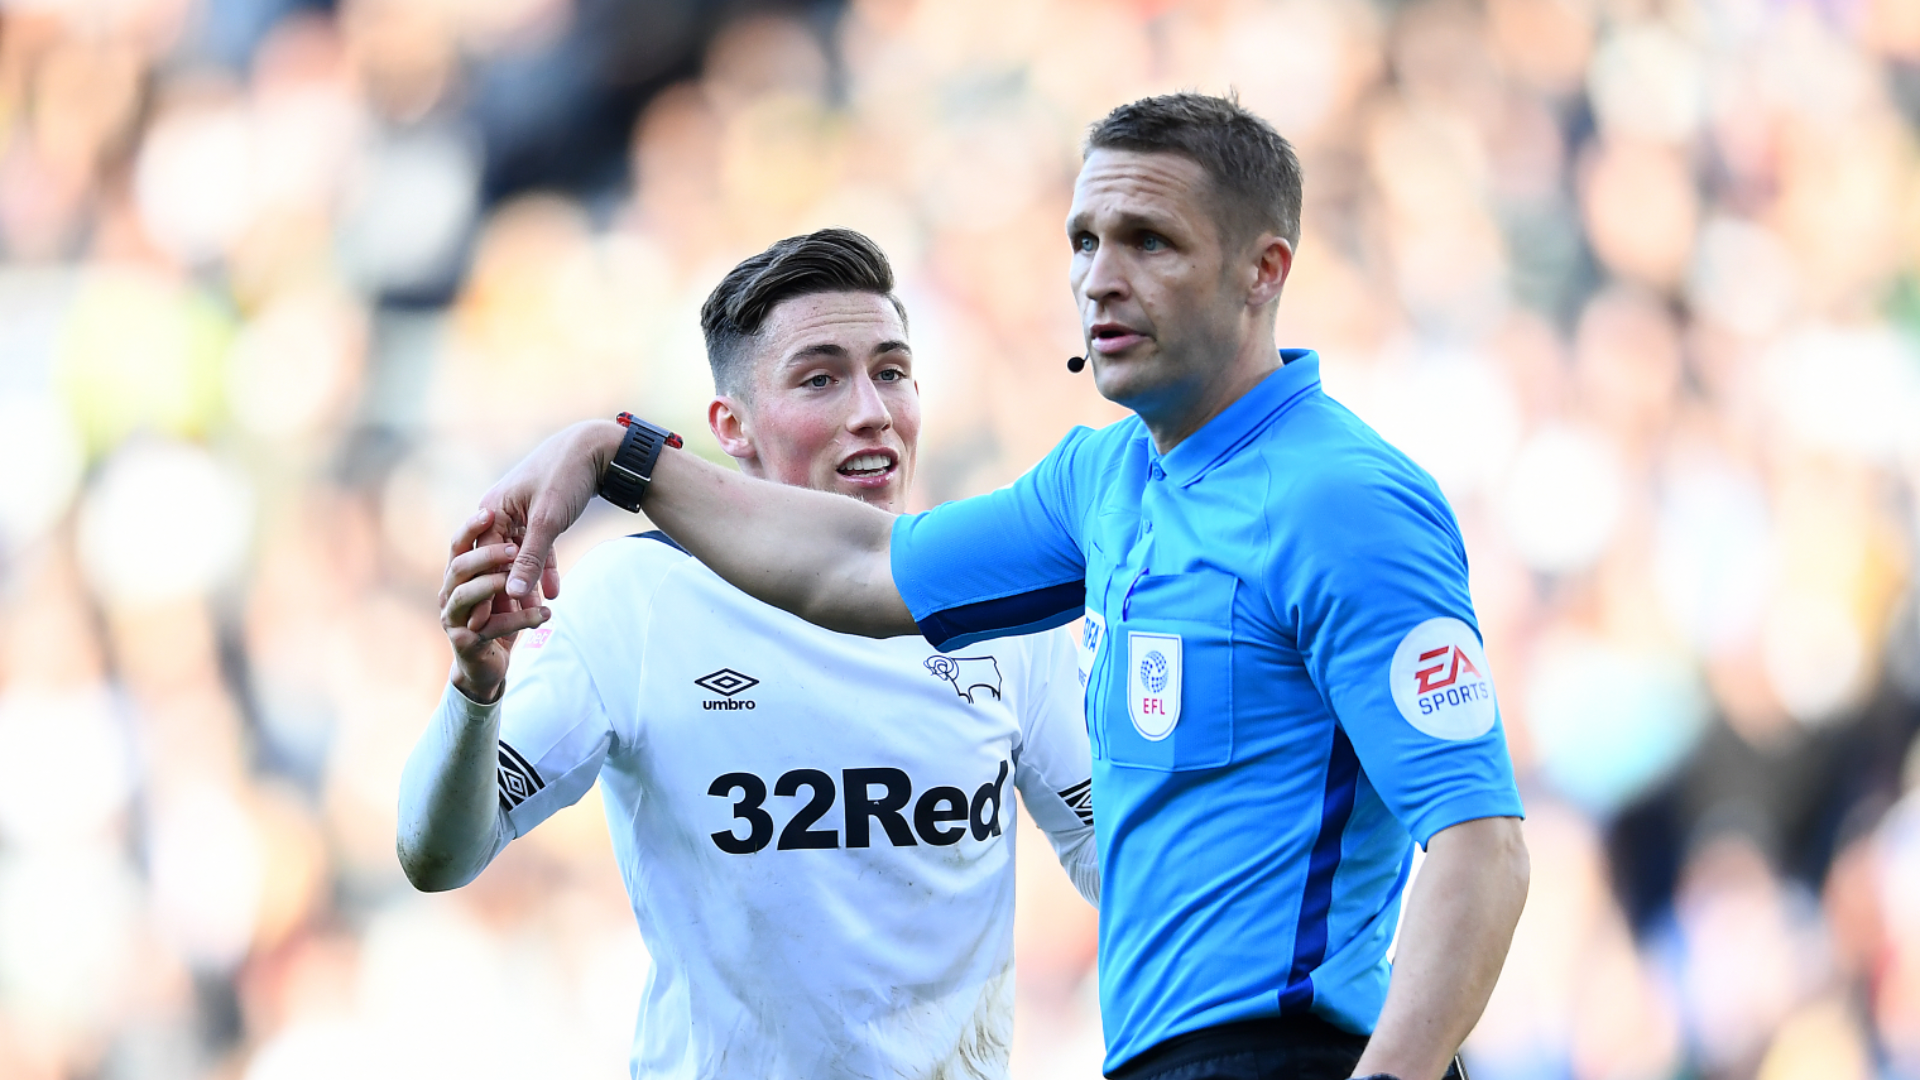 Harry Wilson Derby 2019